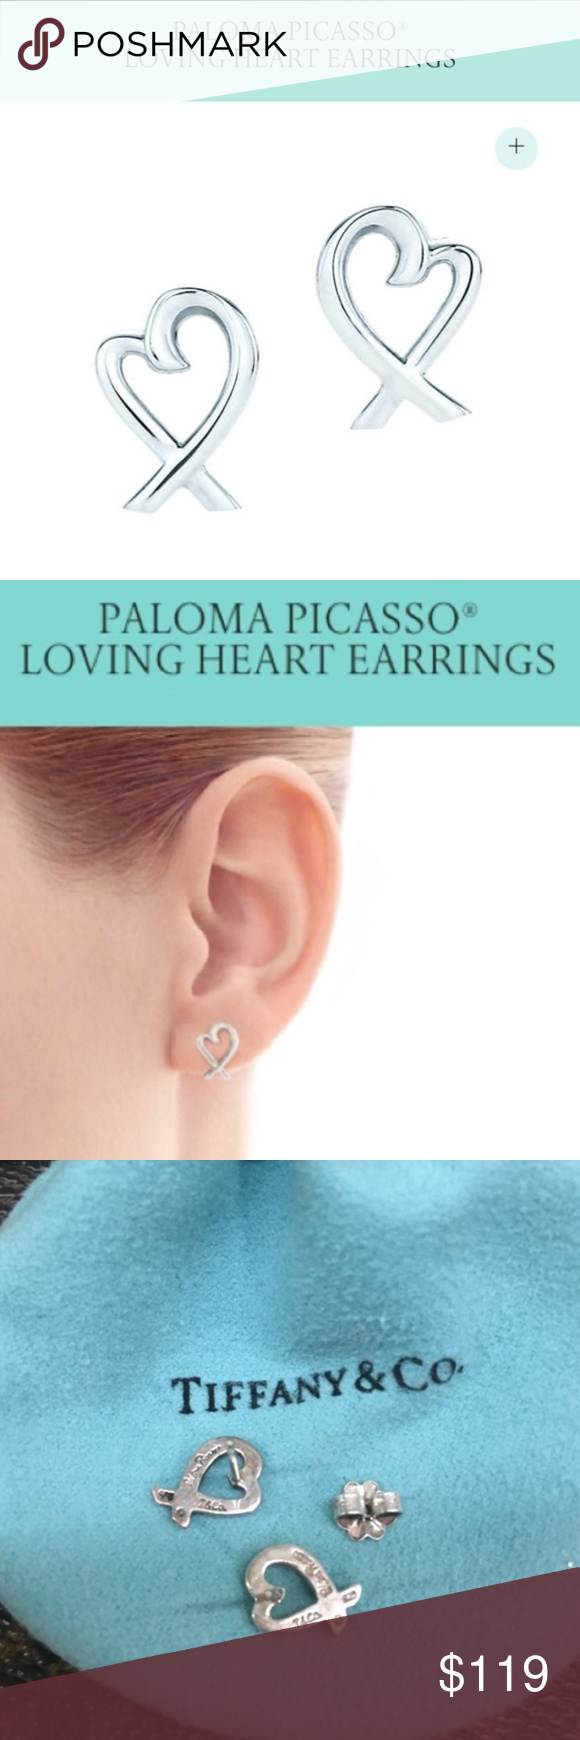 5bdbee532 Tiffany & Co Paloma Picasso Loving Heart earrings Tiffany & Co. Paloma  Picasso® Loving Heart earrings in sterling silver. 100% authentic.